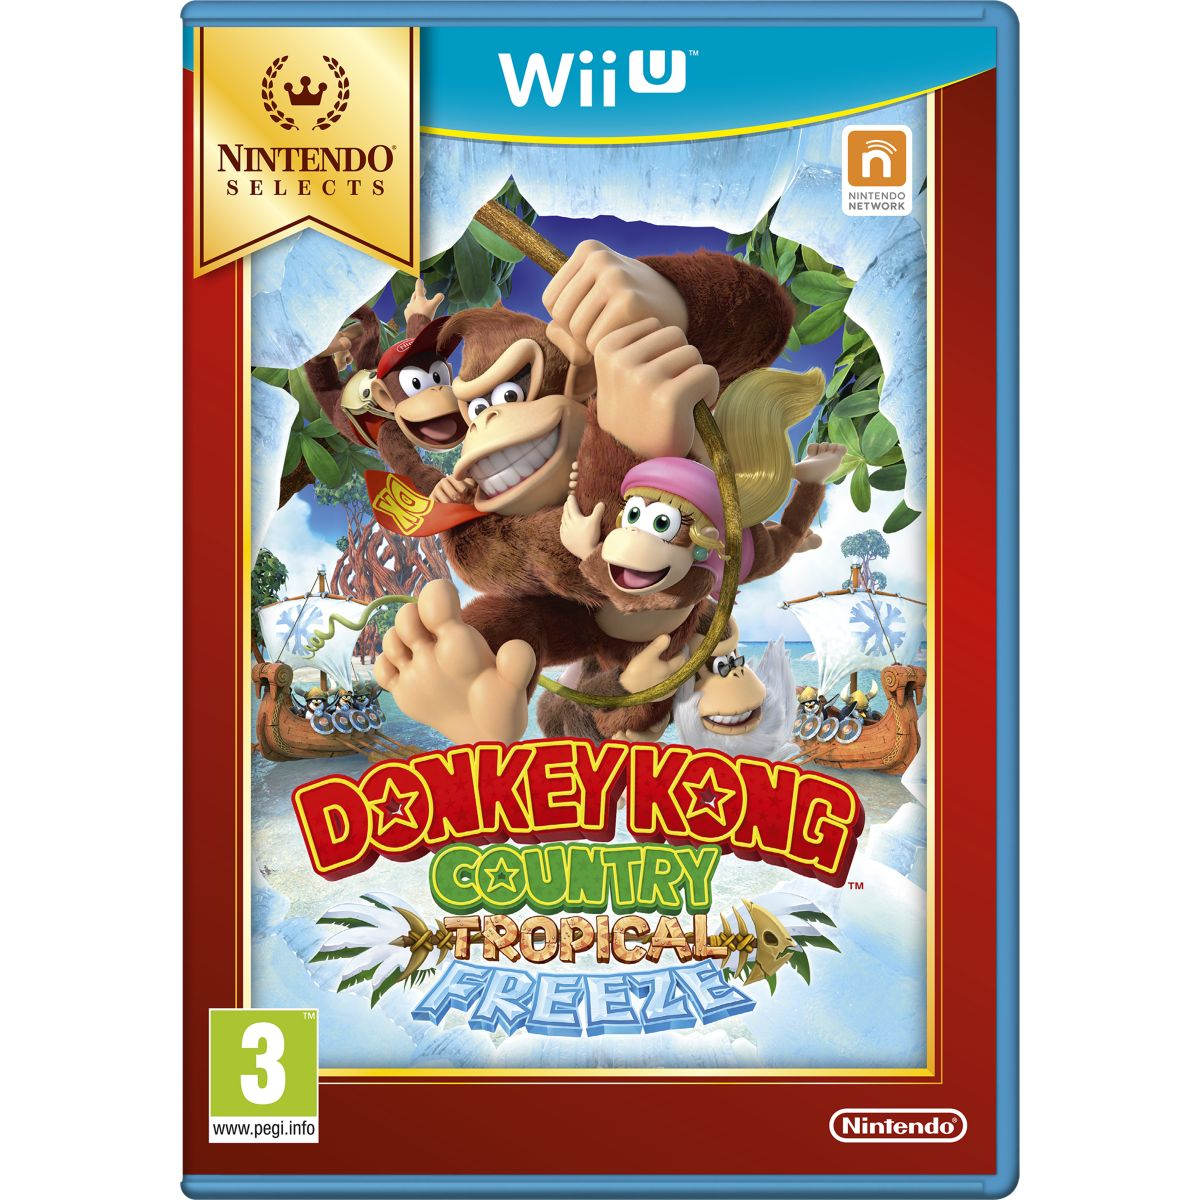 Jeu Wii U NINTENDO Donkey Kong Country Tropical Freeze Selects